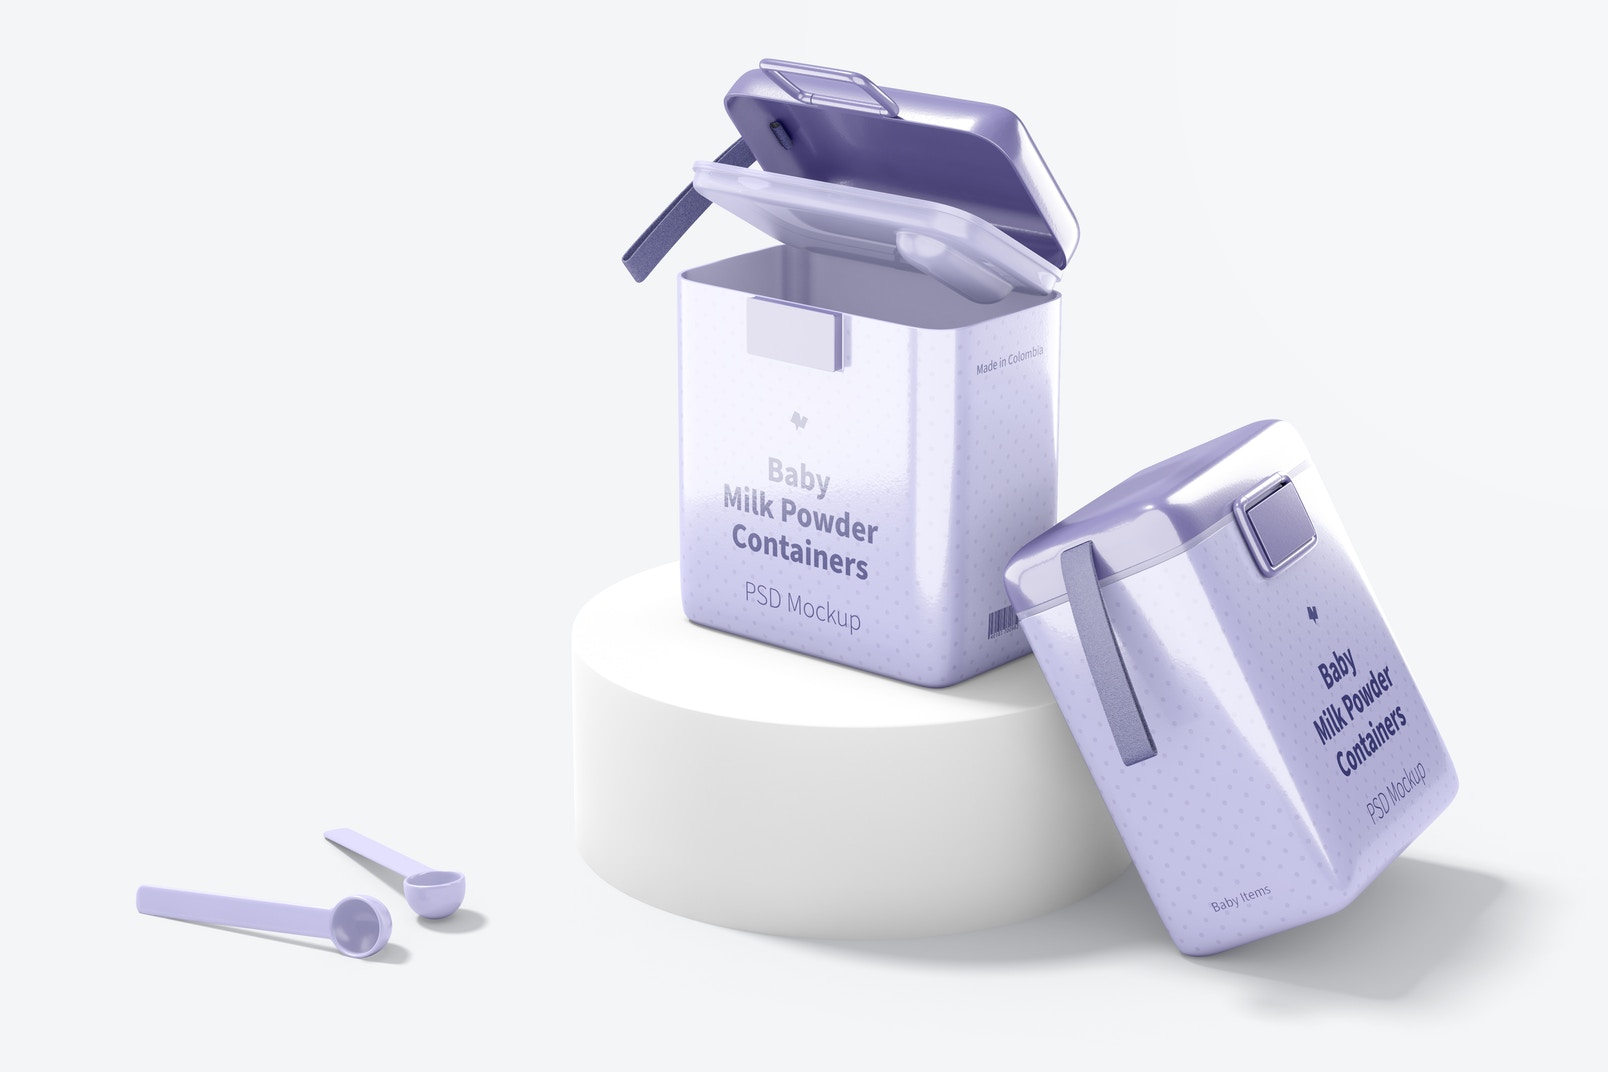 Large Baby Milk Powder Containers Mockup